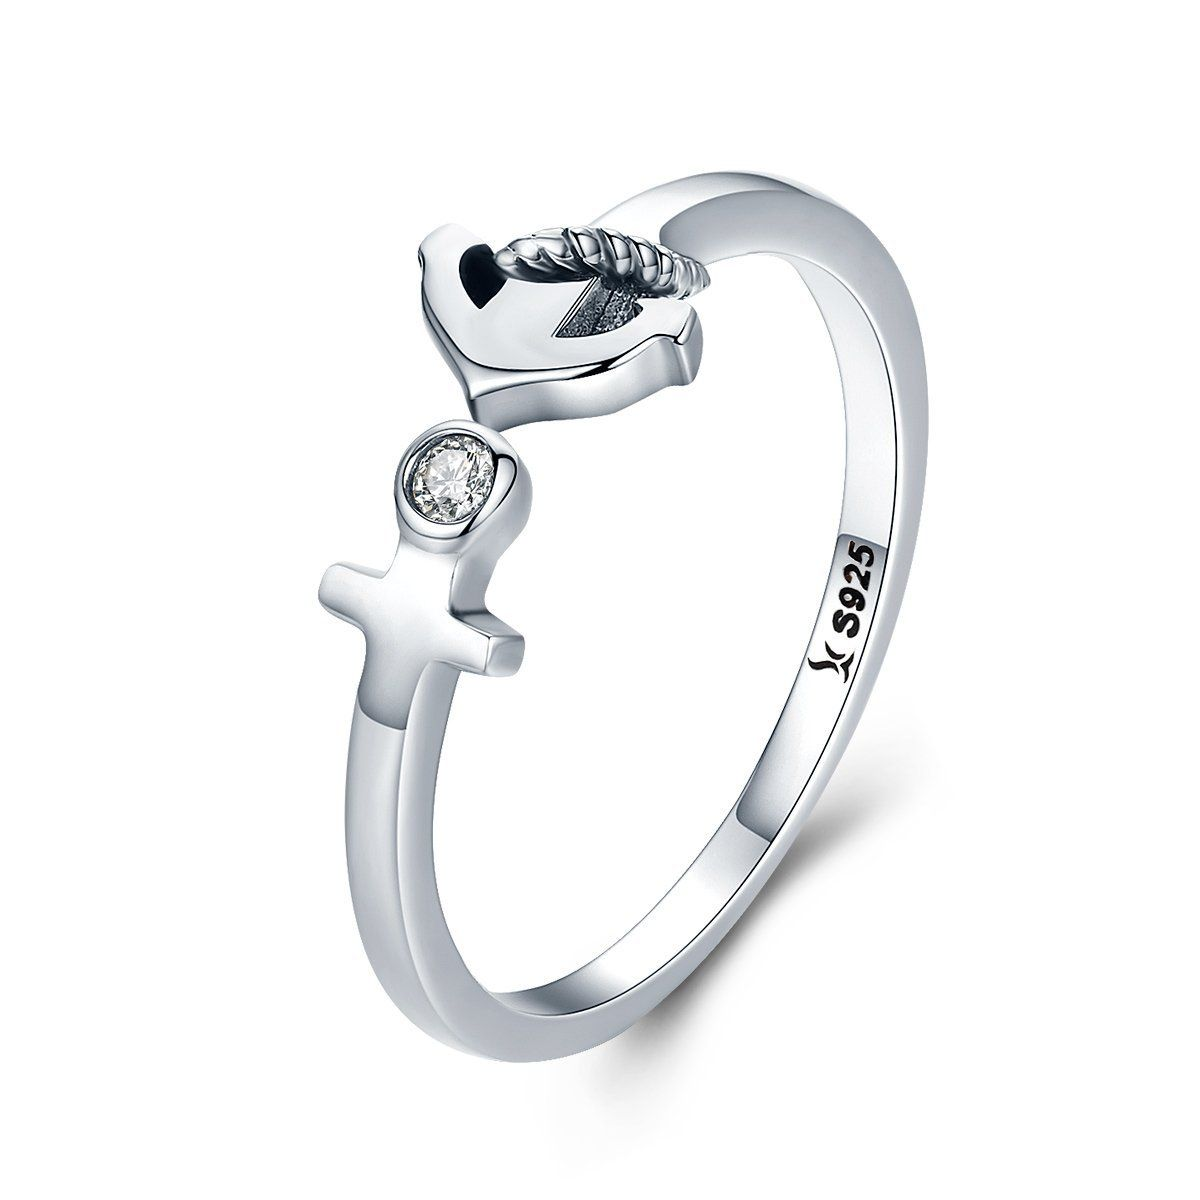 Chic Anchor Call Adjustable Open Rings Vsr131 13 98